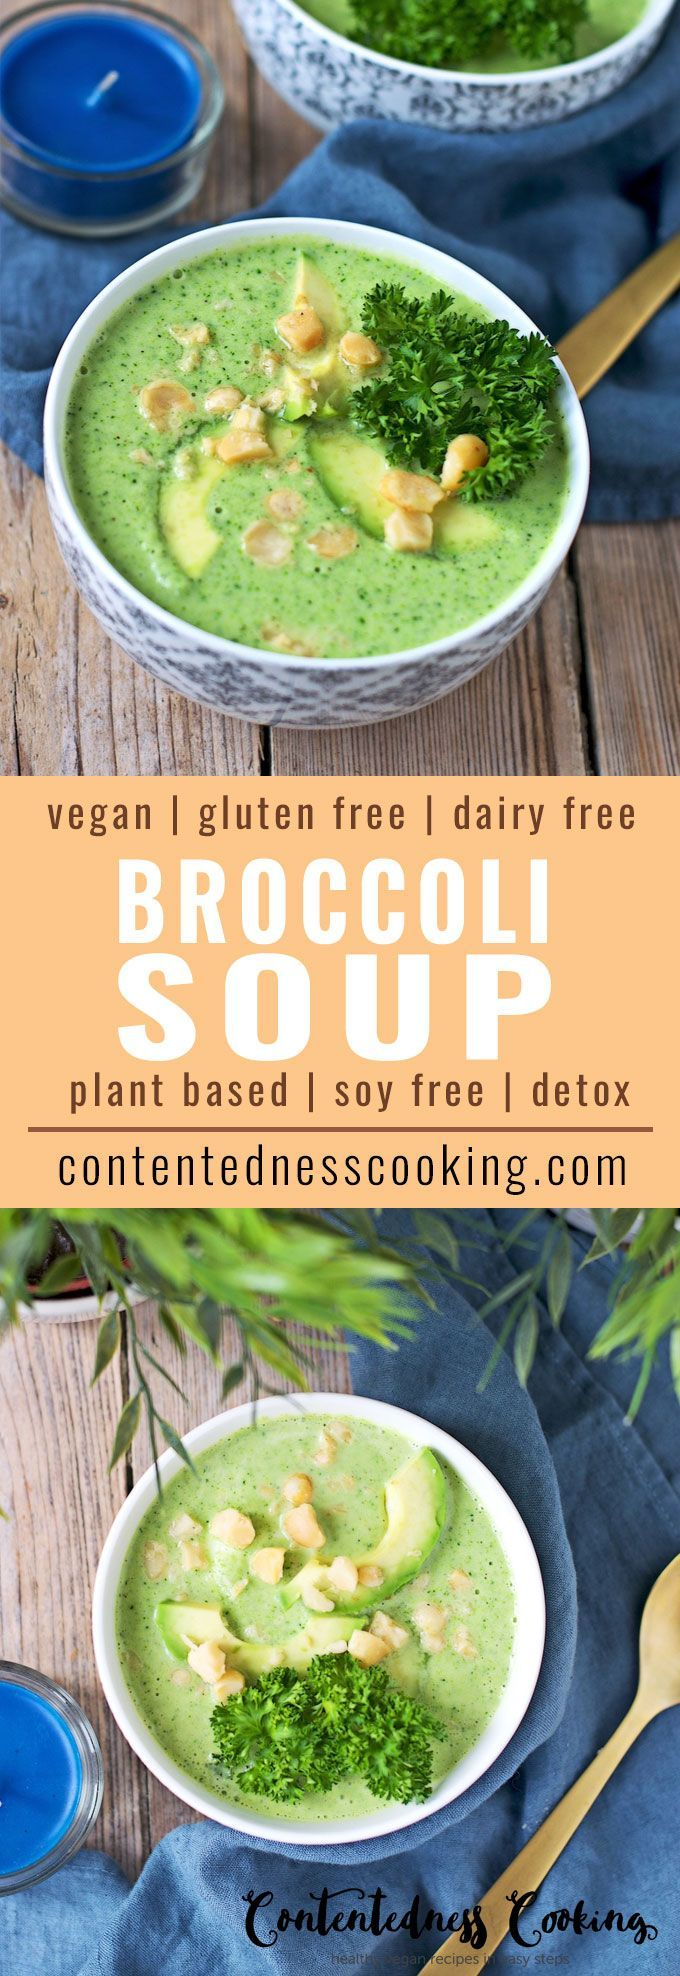 My new Detox Broccoli Soup is a great cleansing recipe. With only 2 ingredients plus optional toppings, this Broccoli Soup is done within minutes and you can enjoy a nourishing and healthy soup. This easy soup recipe is a great way to eat more veggies and greens in your nutrition.